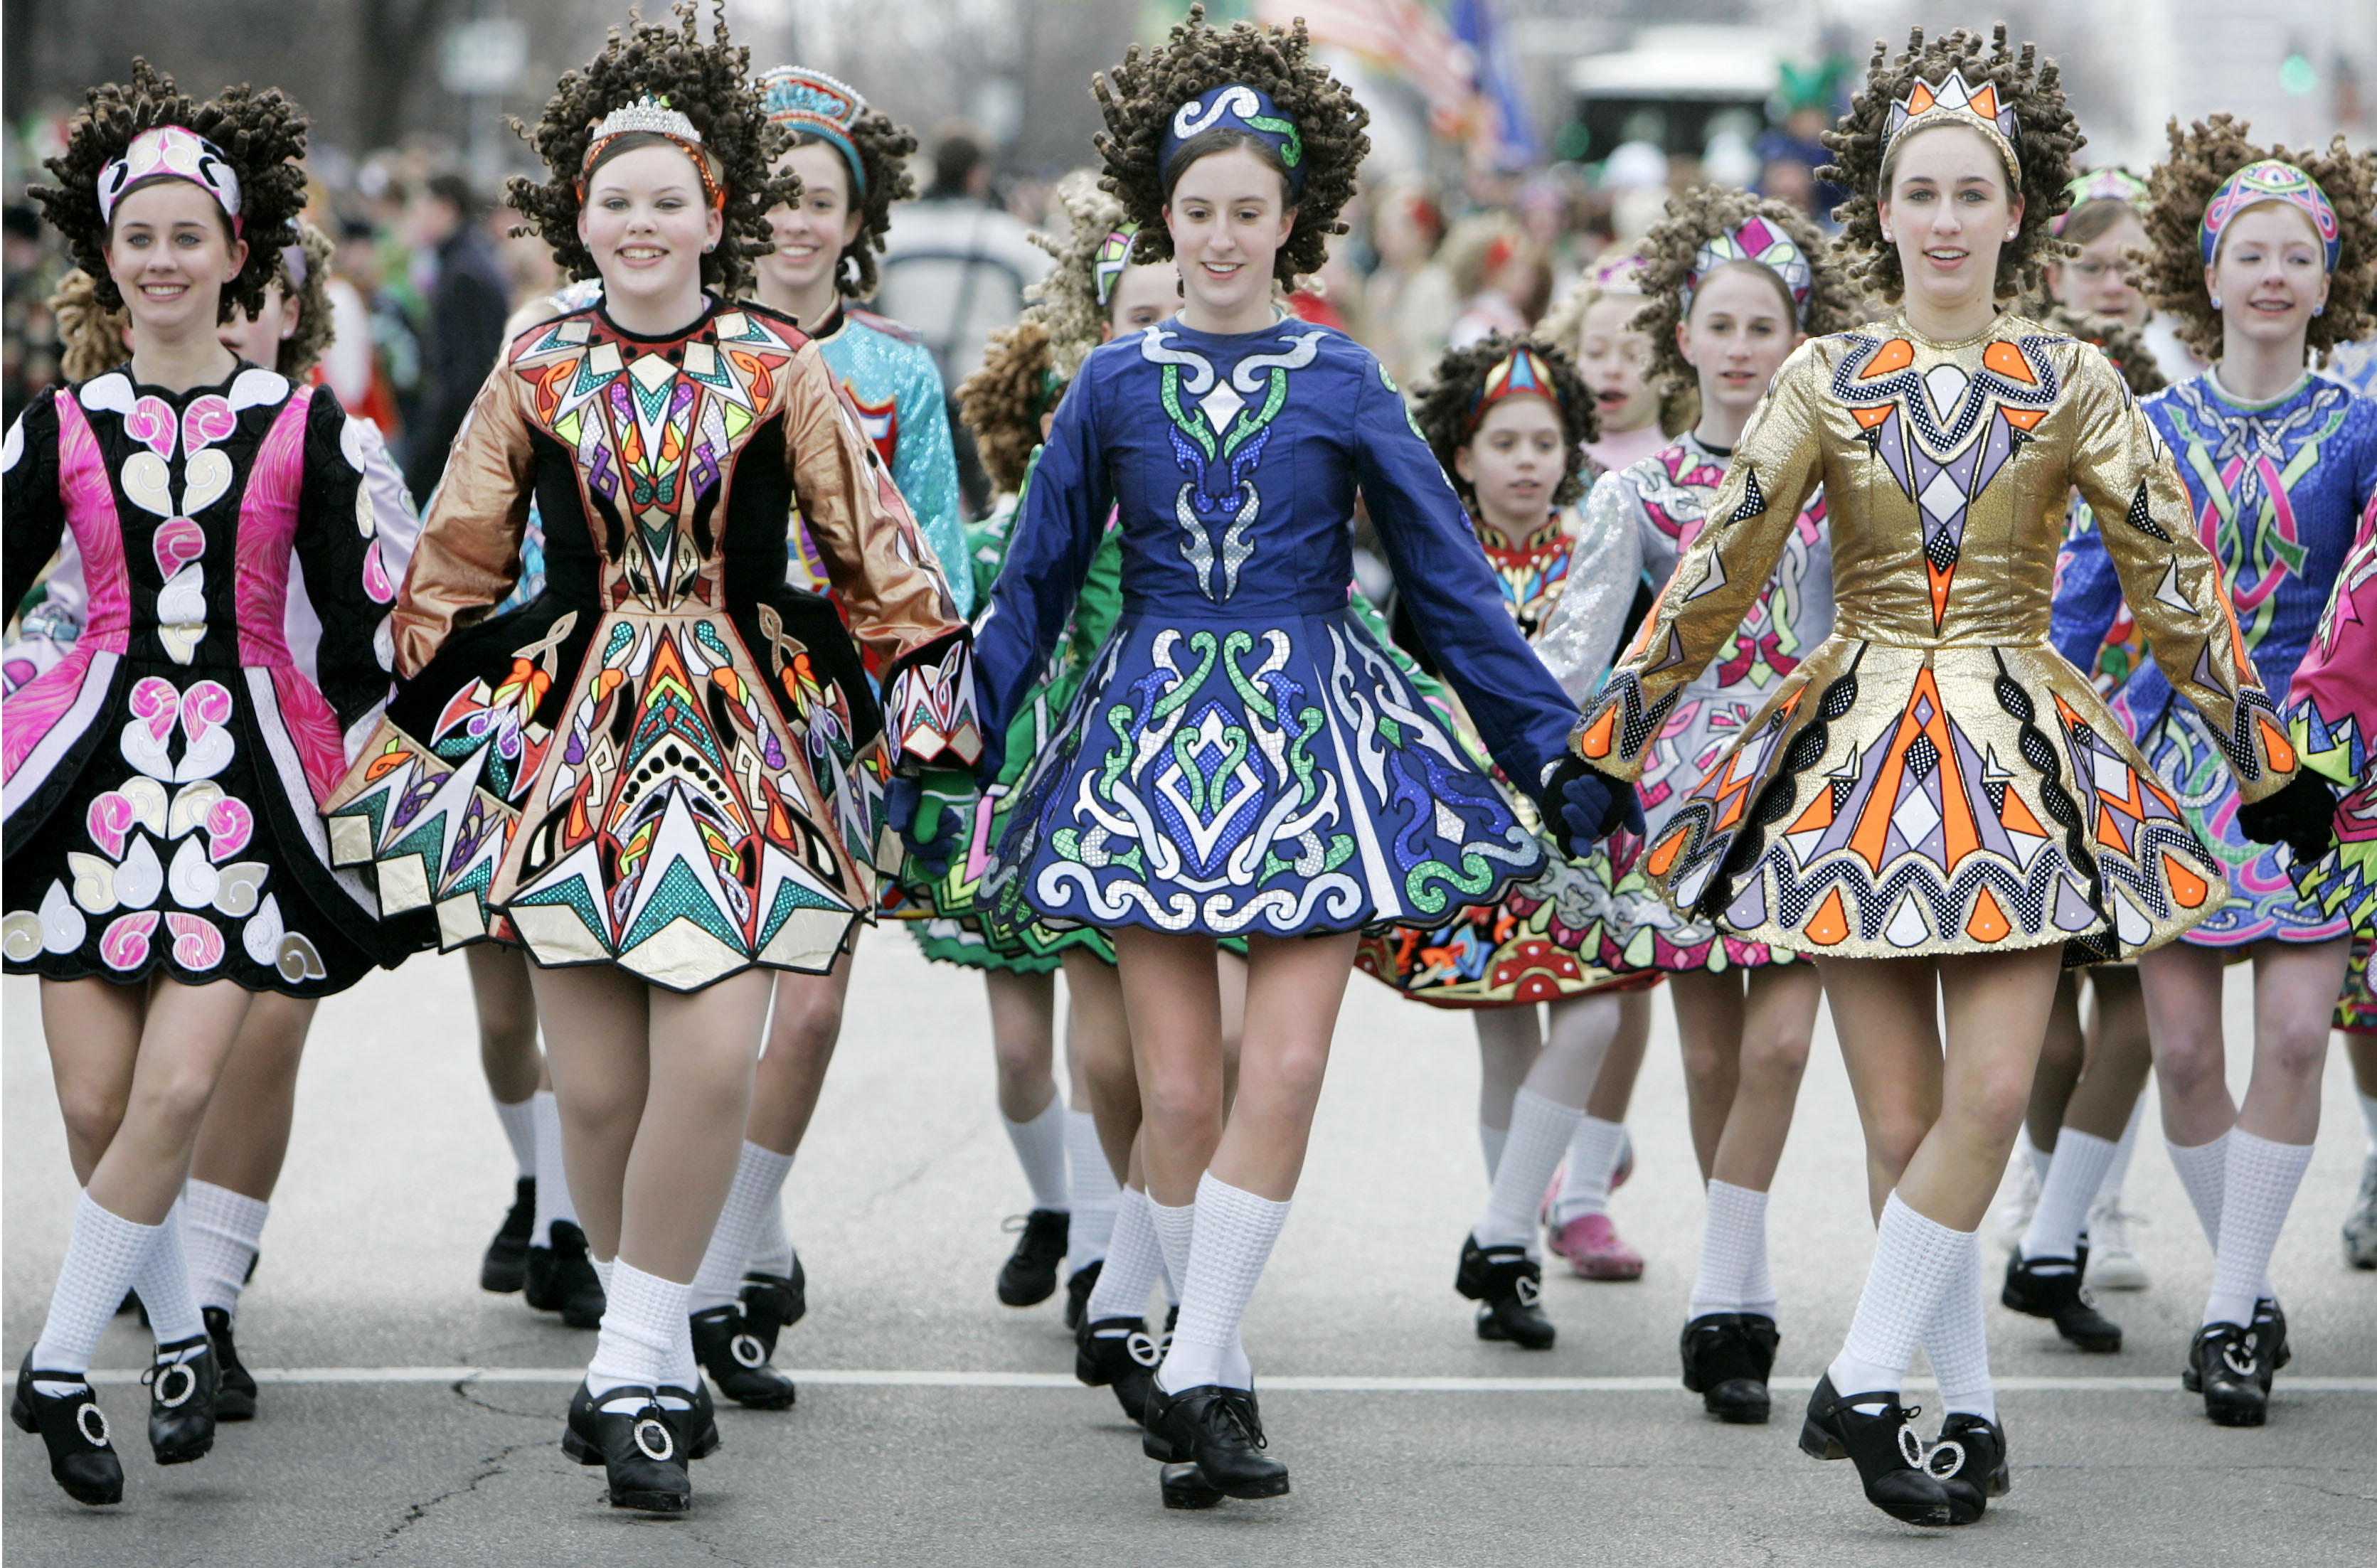 Photo © M. Spencer Green | The Sheila Tully School of Irish Dance